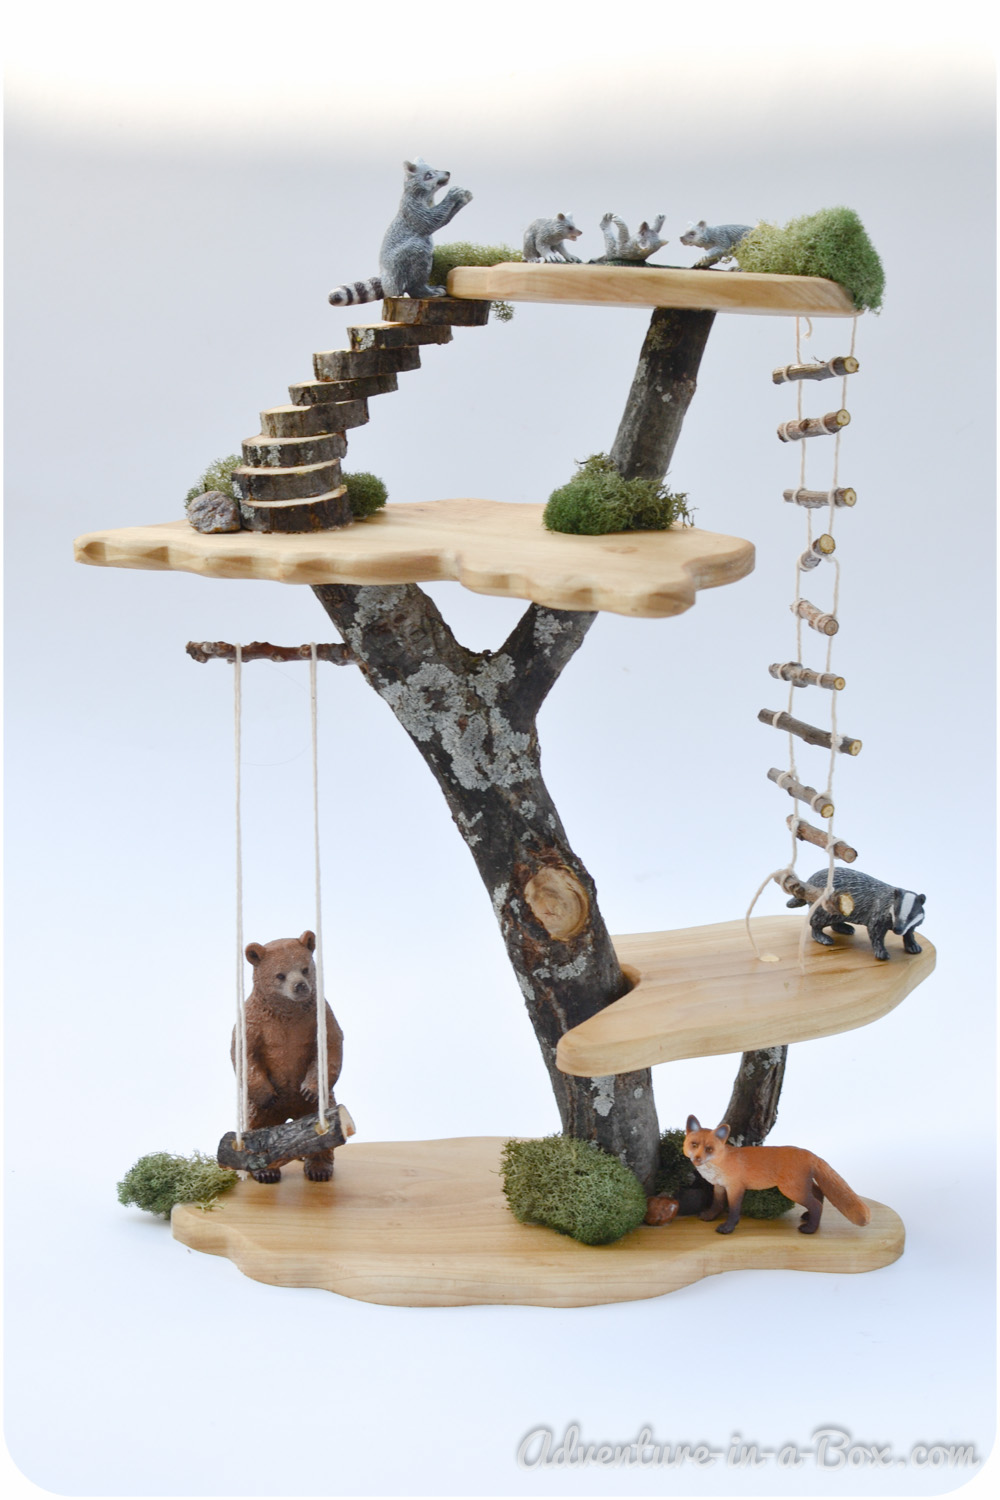 DIY Project: How To Make A Toy Tree House - 1000x1500 - jpeg